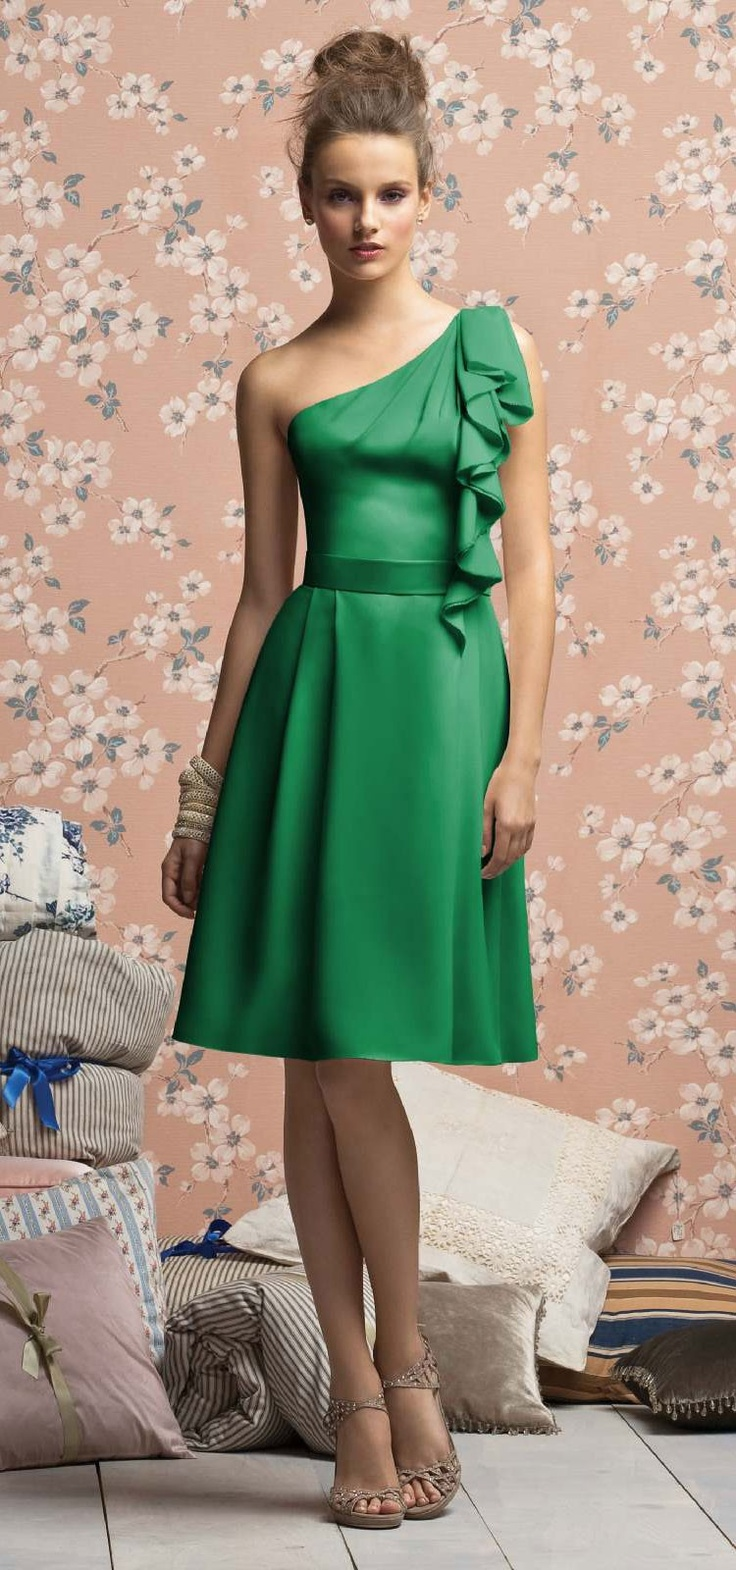 The best images about dresses on pinterest blush marchesa and